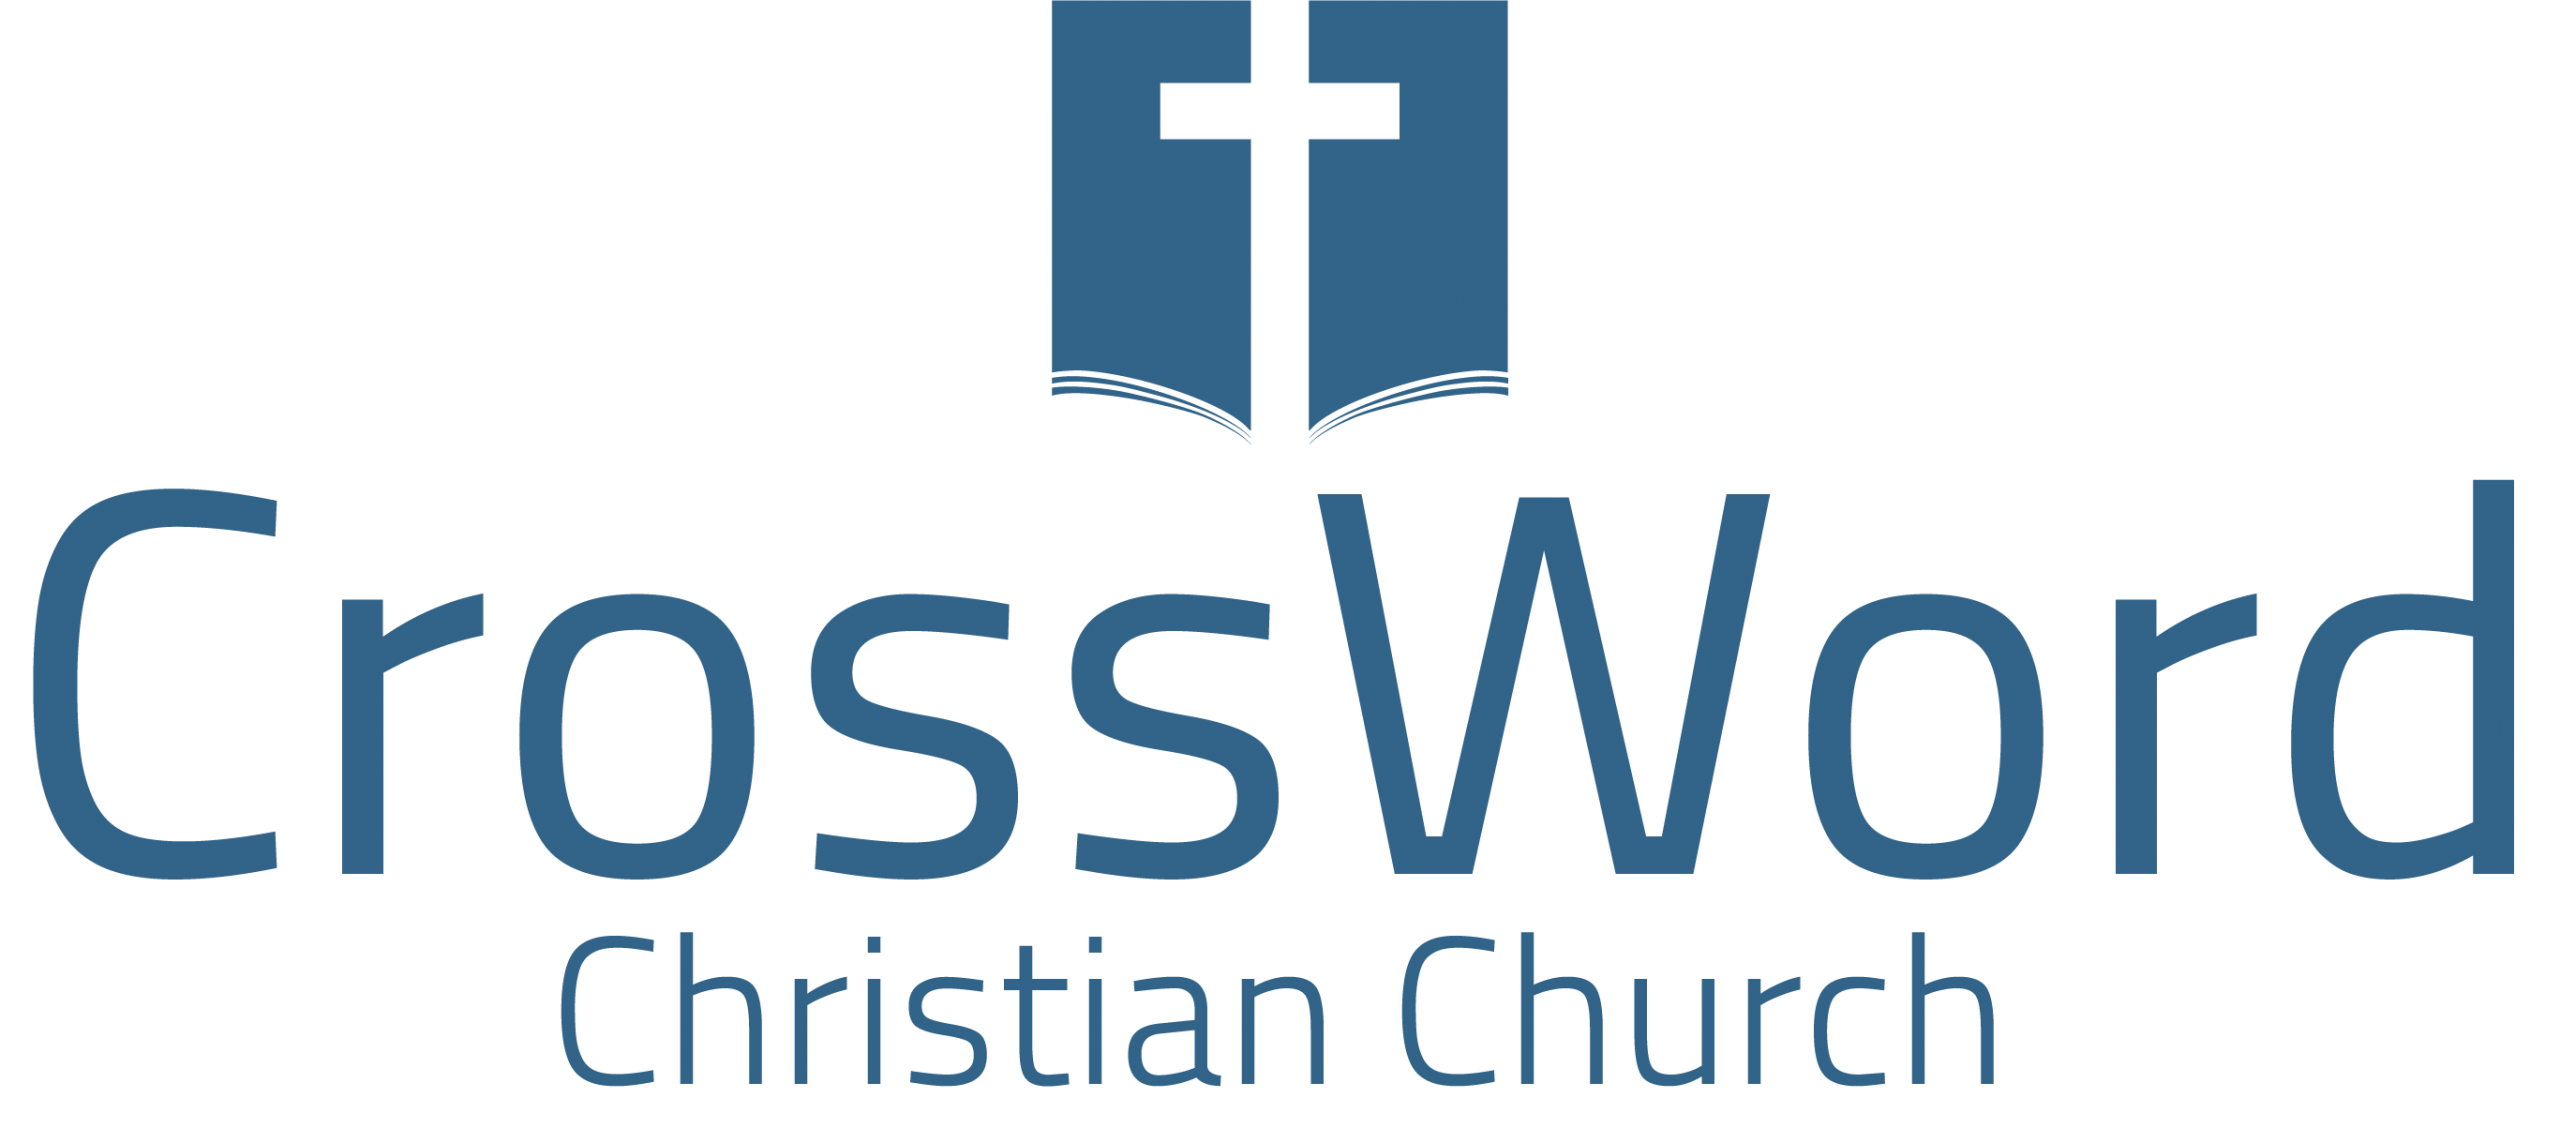 CrossWord Christian Church logo